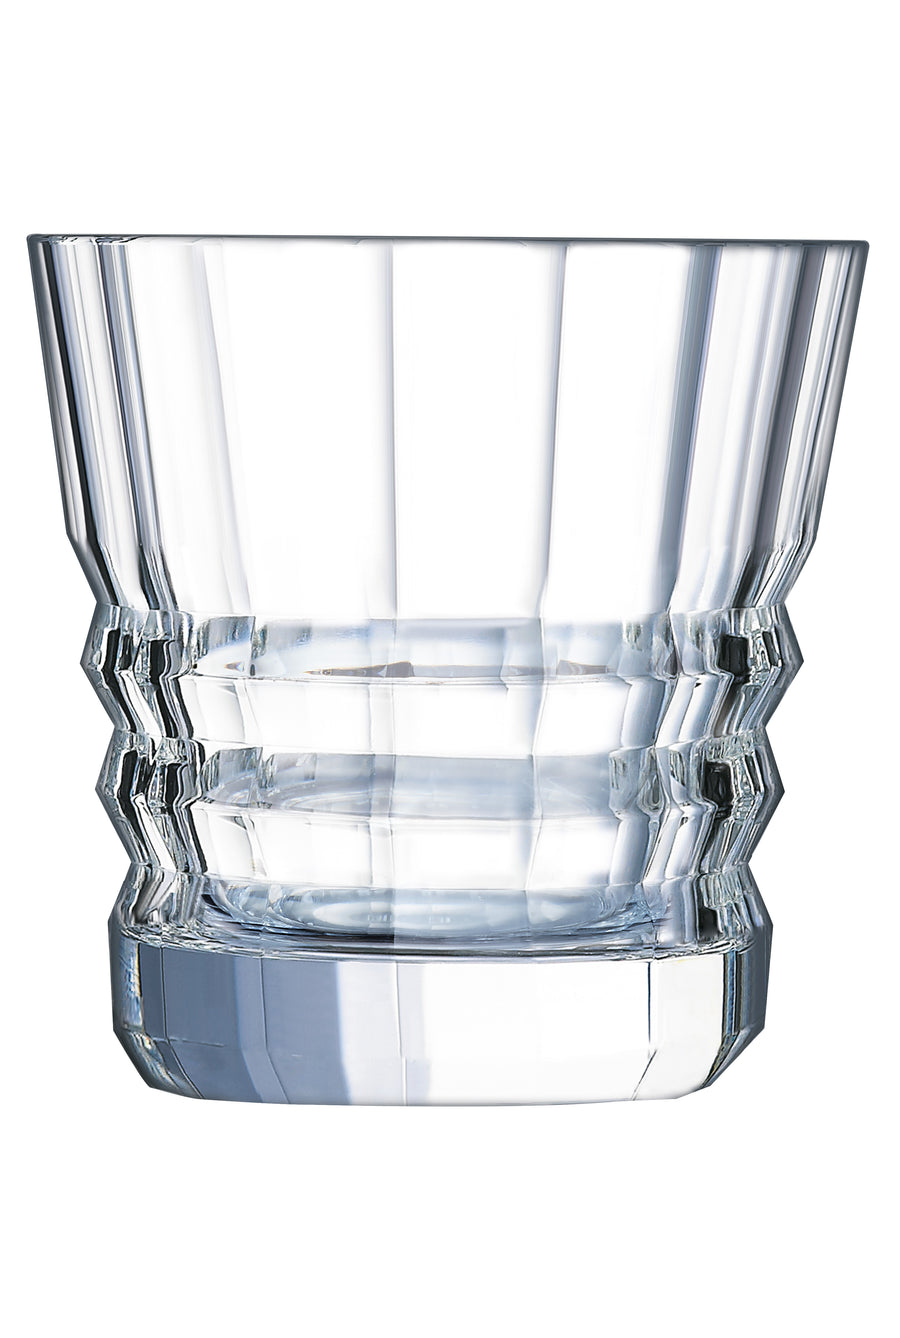 Cristal d'Arques Architecte Tumbler, Set of 4